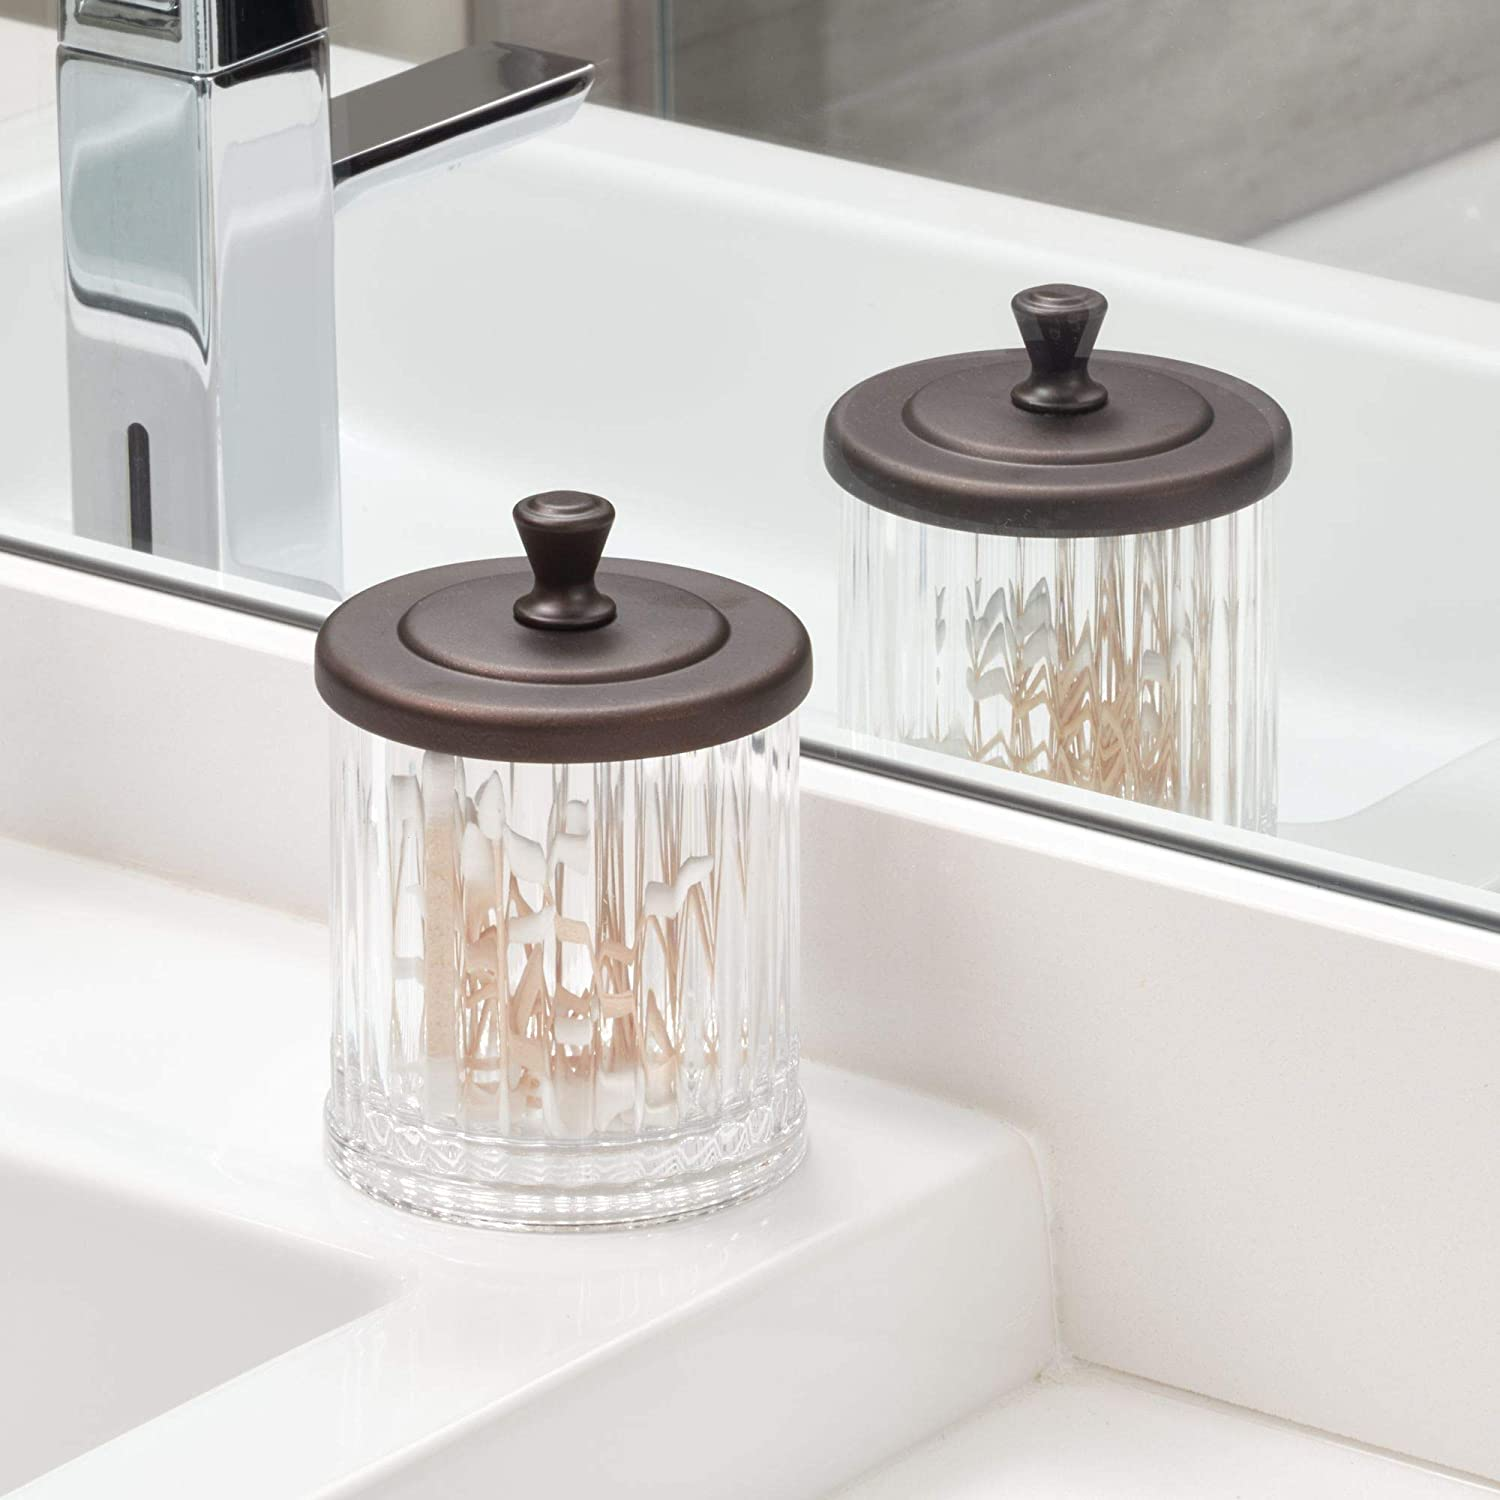 Holds Makeup Q-Tips Hair Supplies and More Set of 2 Small 02076M2 InterDesign Alston Bathroom Canister with Lid